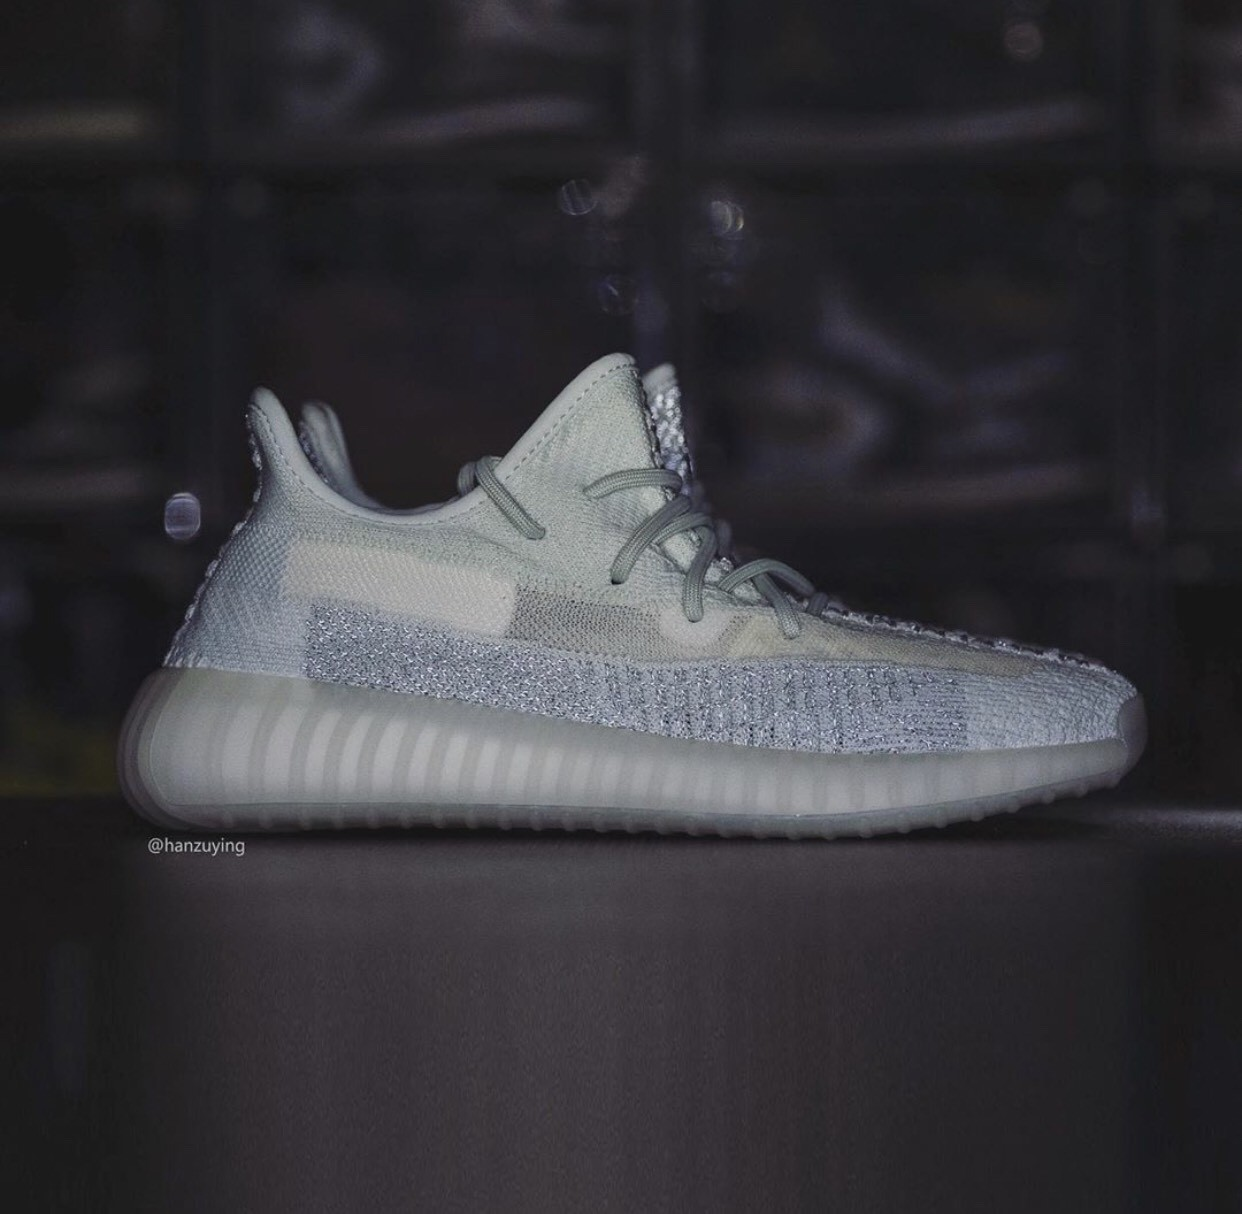 ▲9月發售的Yeezy。(圖/翻攝自IG@yeezyseason2、@hanzuying、Yeezy Mafia、Sneakernews)